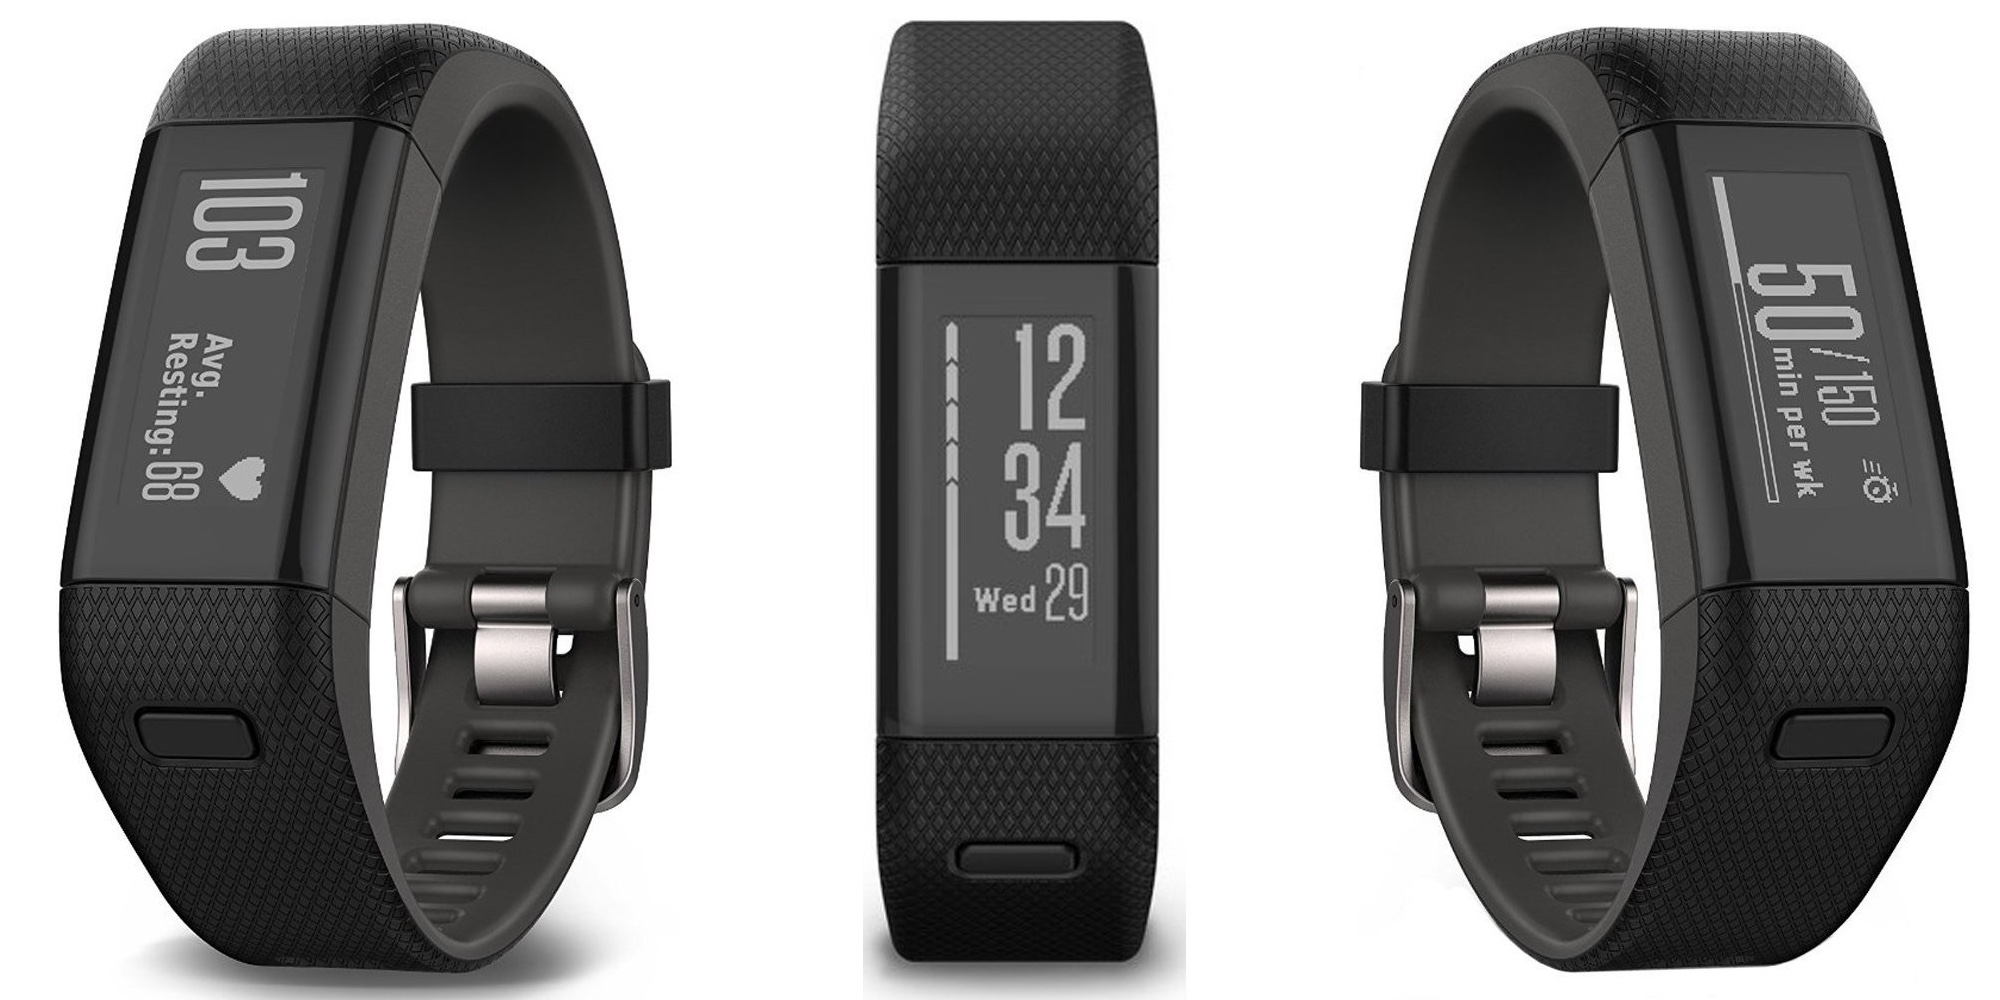 Smartphone Accessories Garmin Vivosmart Hr Activity